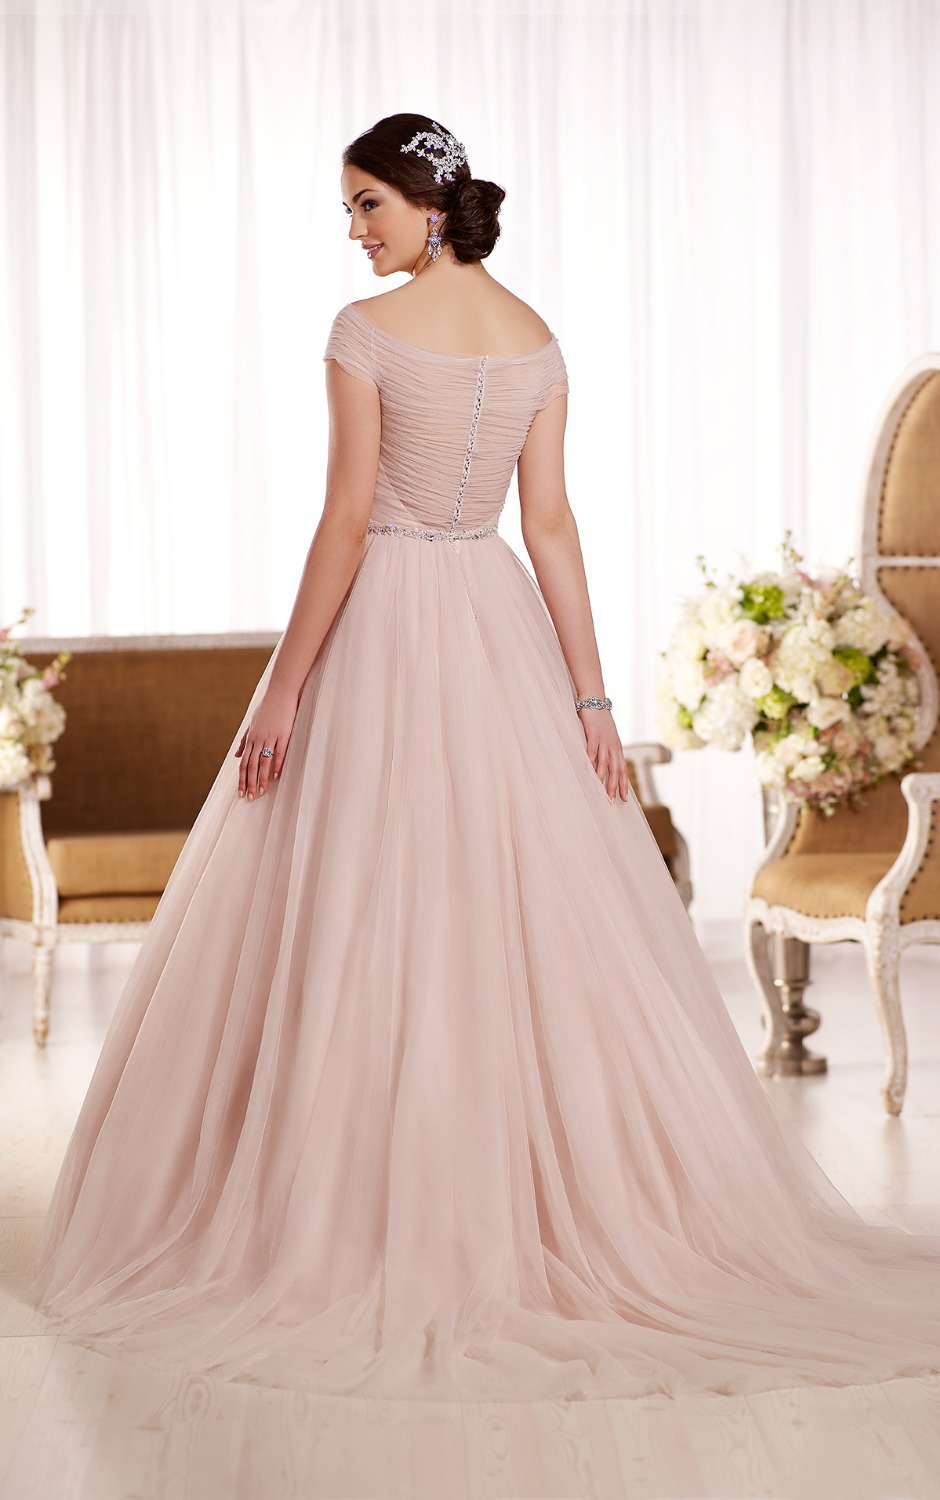 Aliexpress.com : Buy New Arrival Slimming Princess Wedding Dresses ...